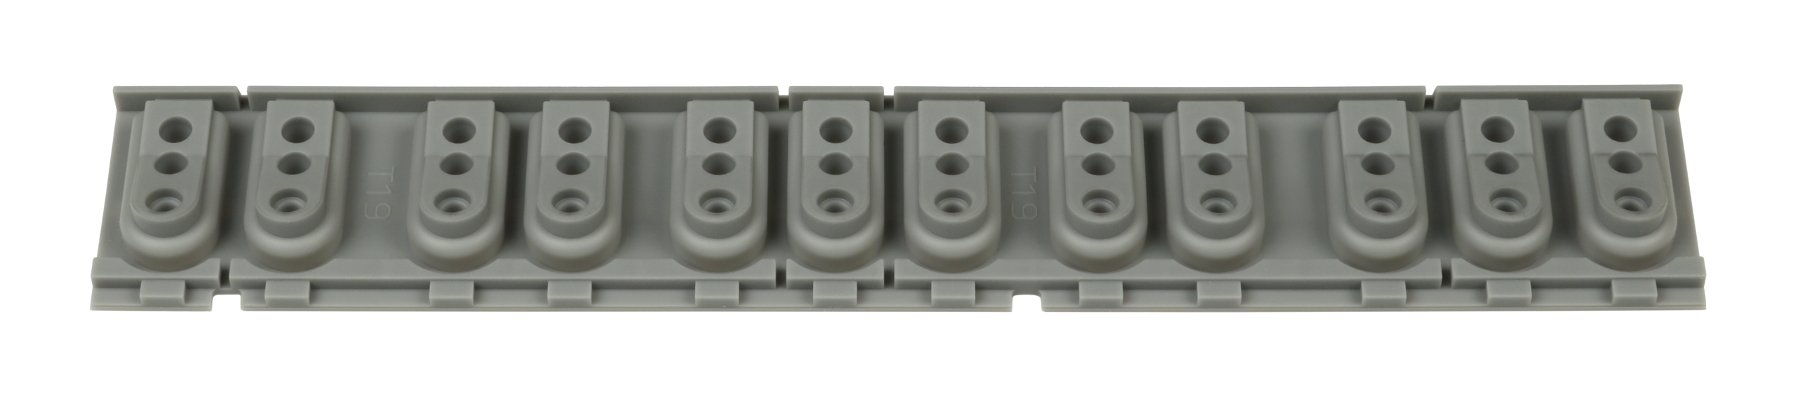 12-Key Rubber Contact for CLP-170